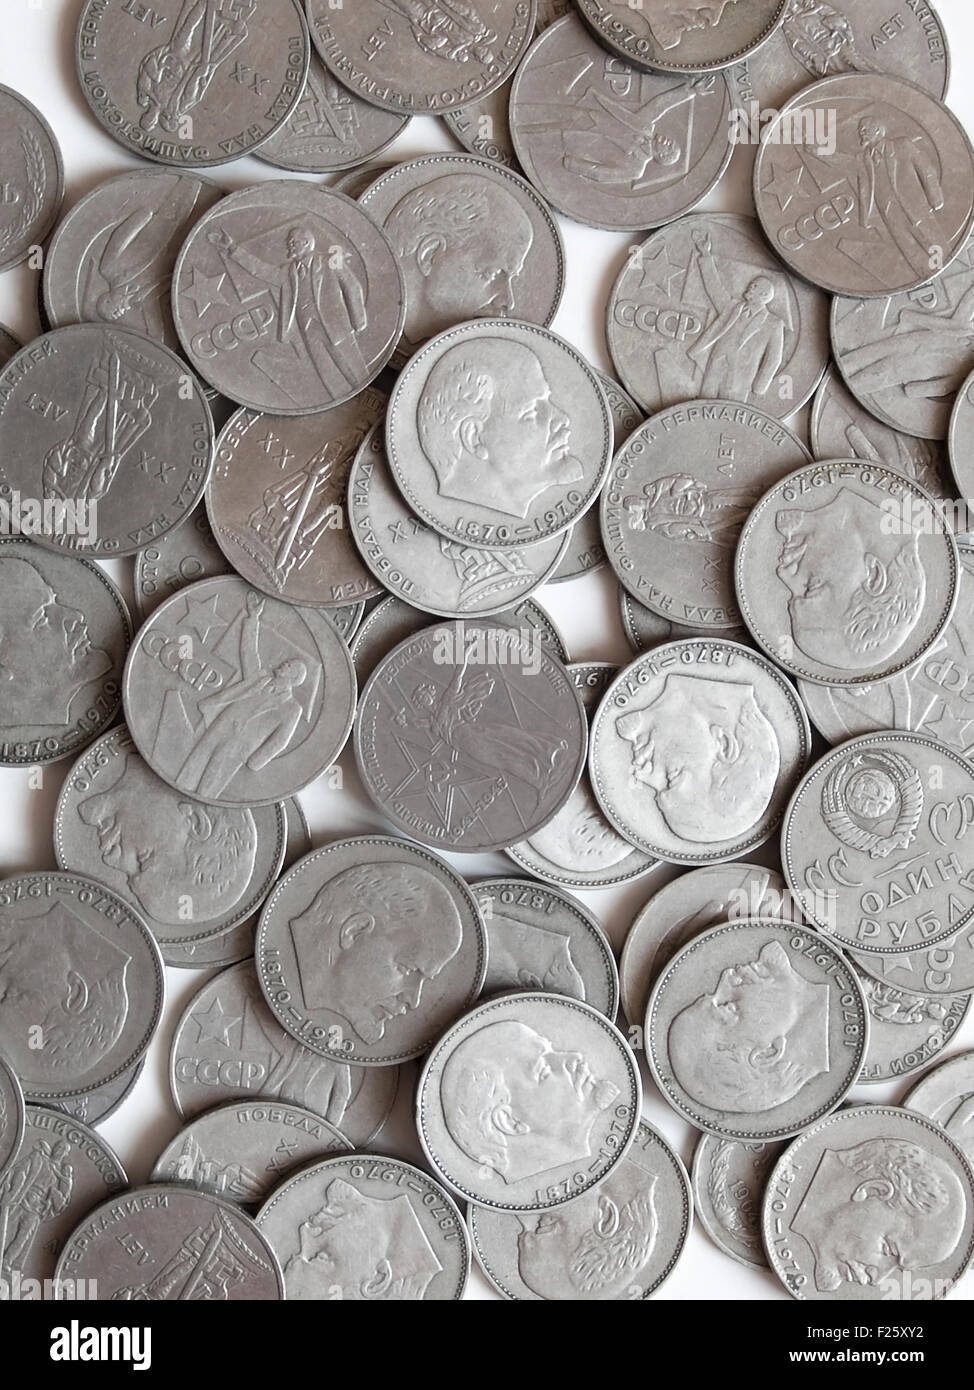 Many USSR metal roubles with Lenin and other designs Stock Photo